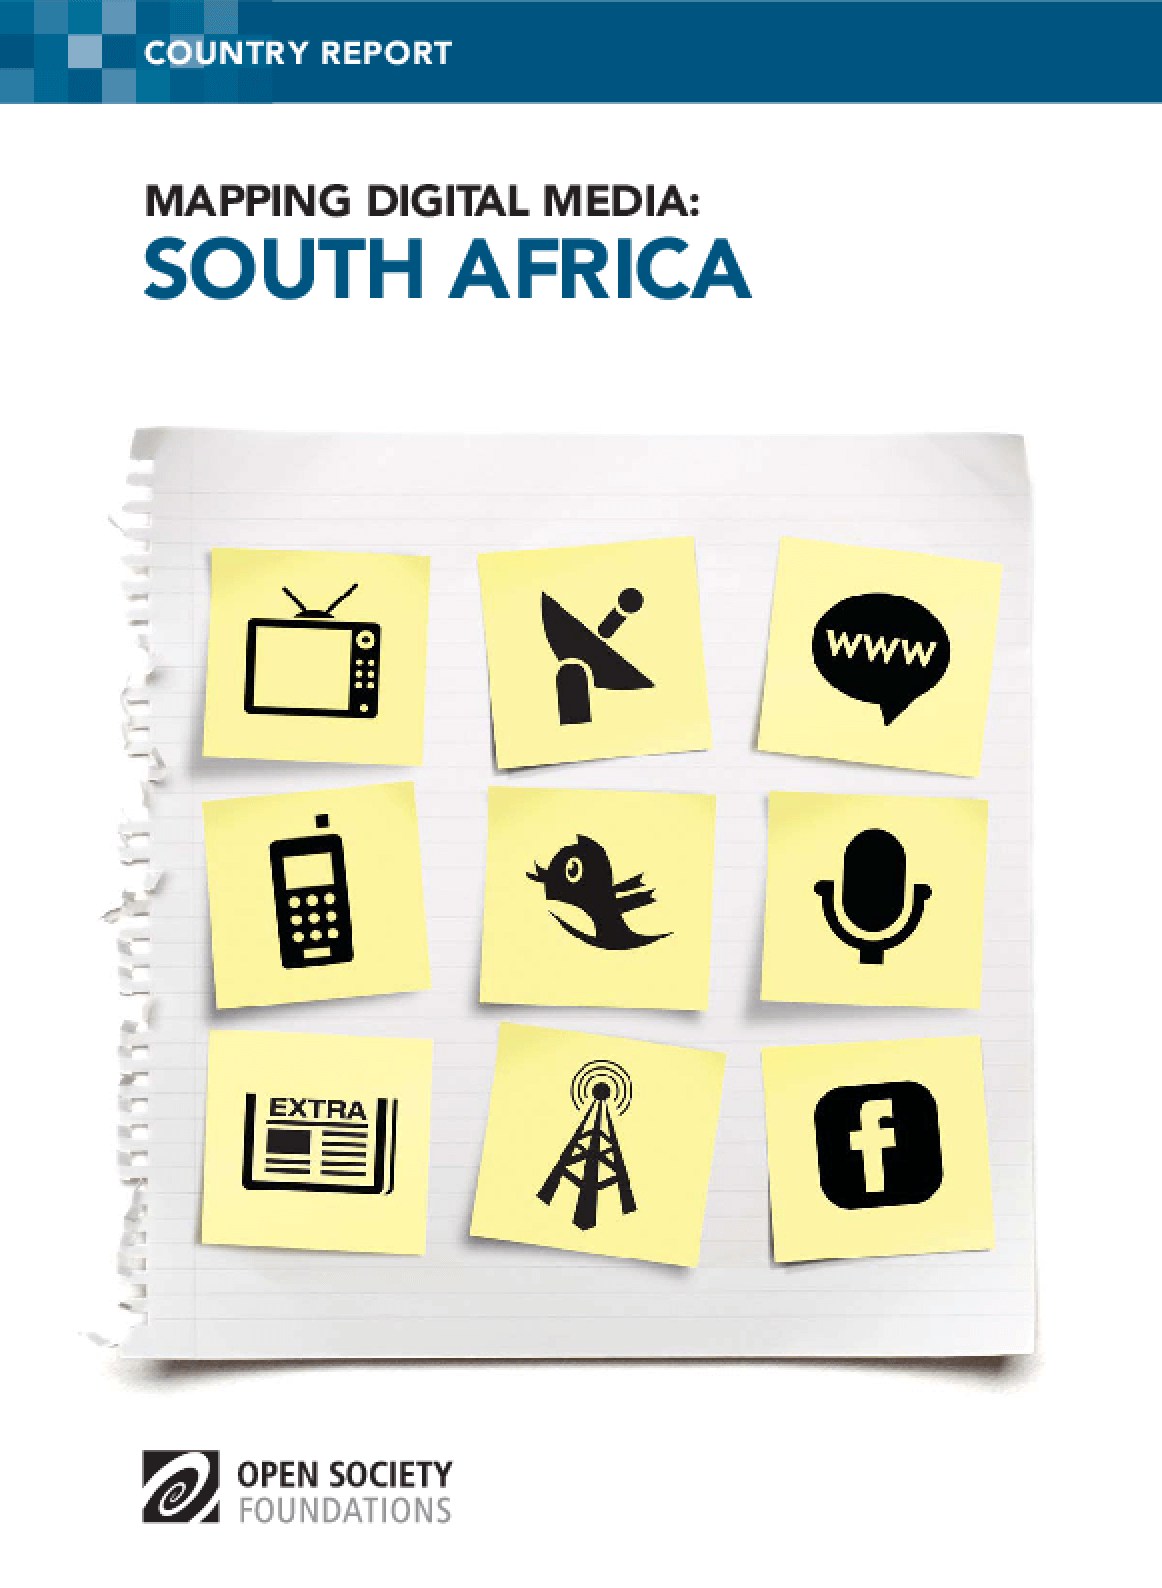 Mapping Digital Media: South Africa